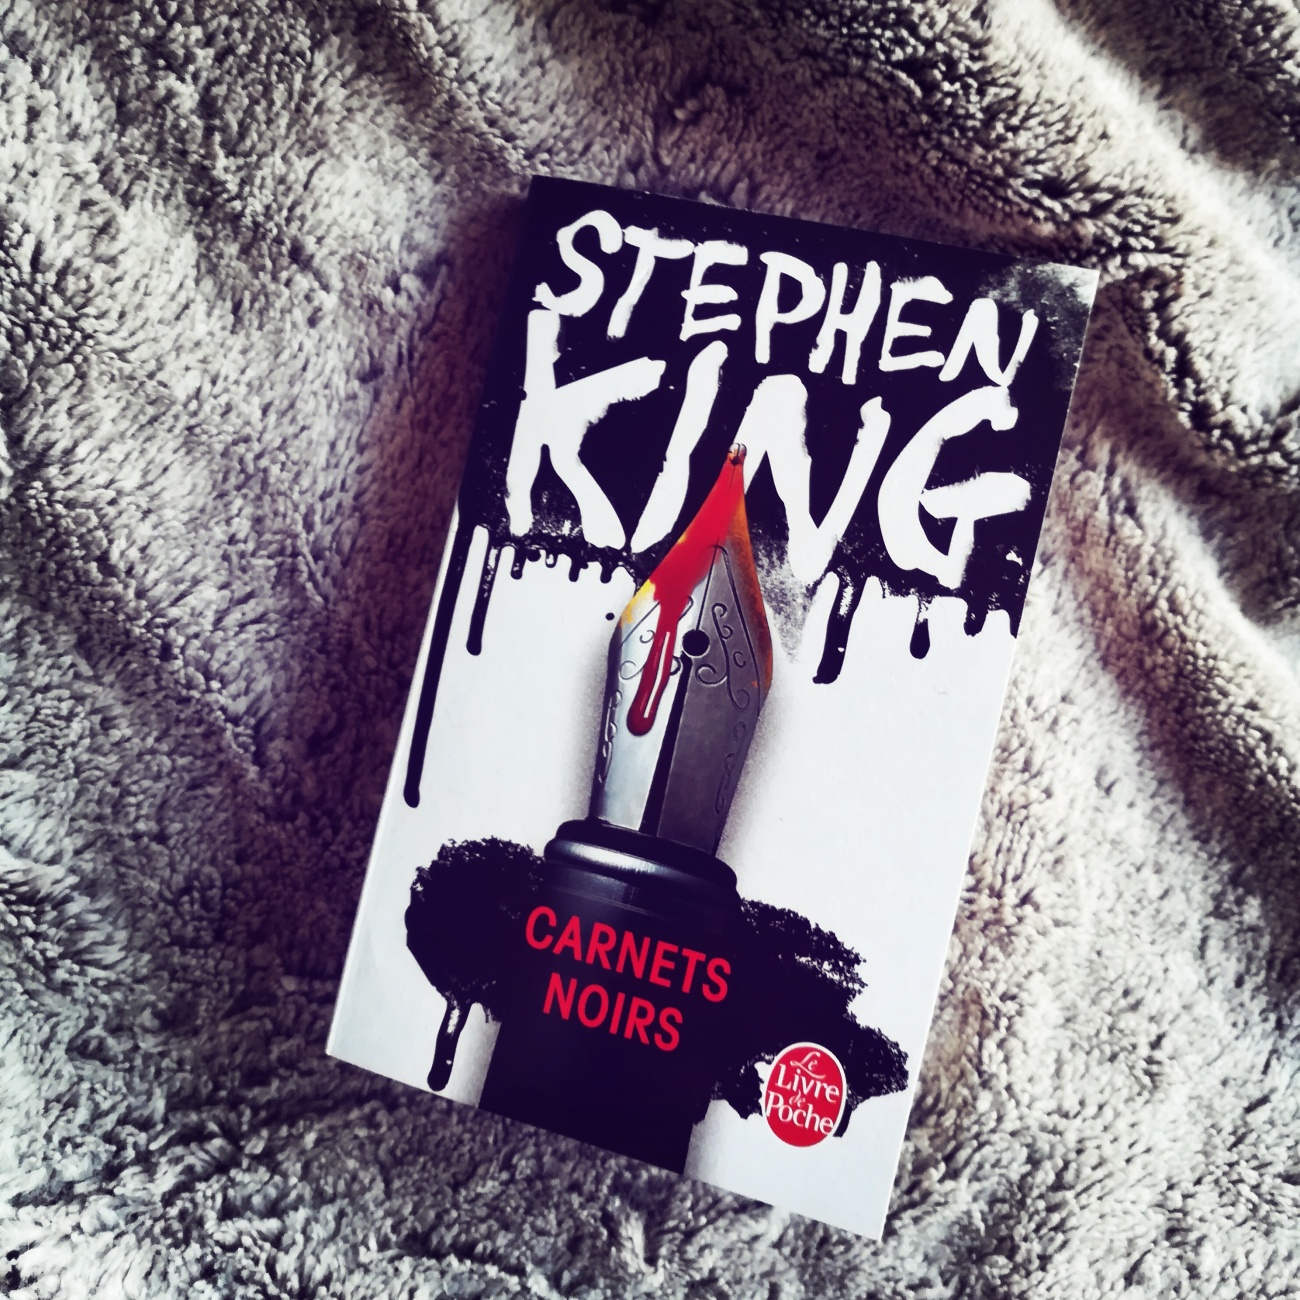 tomabooks-carnets-noirs-stephen-king